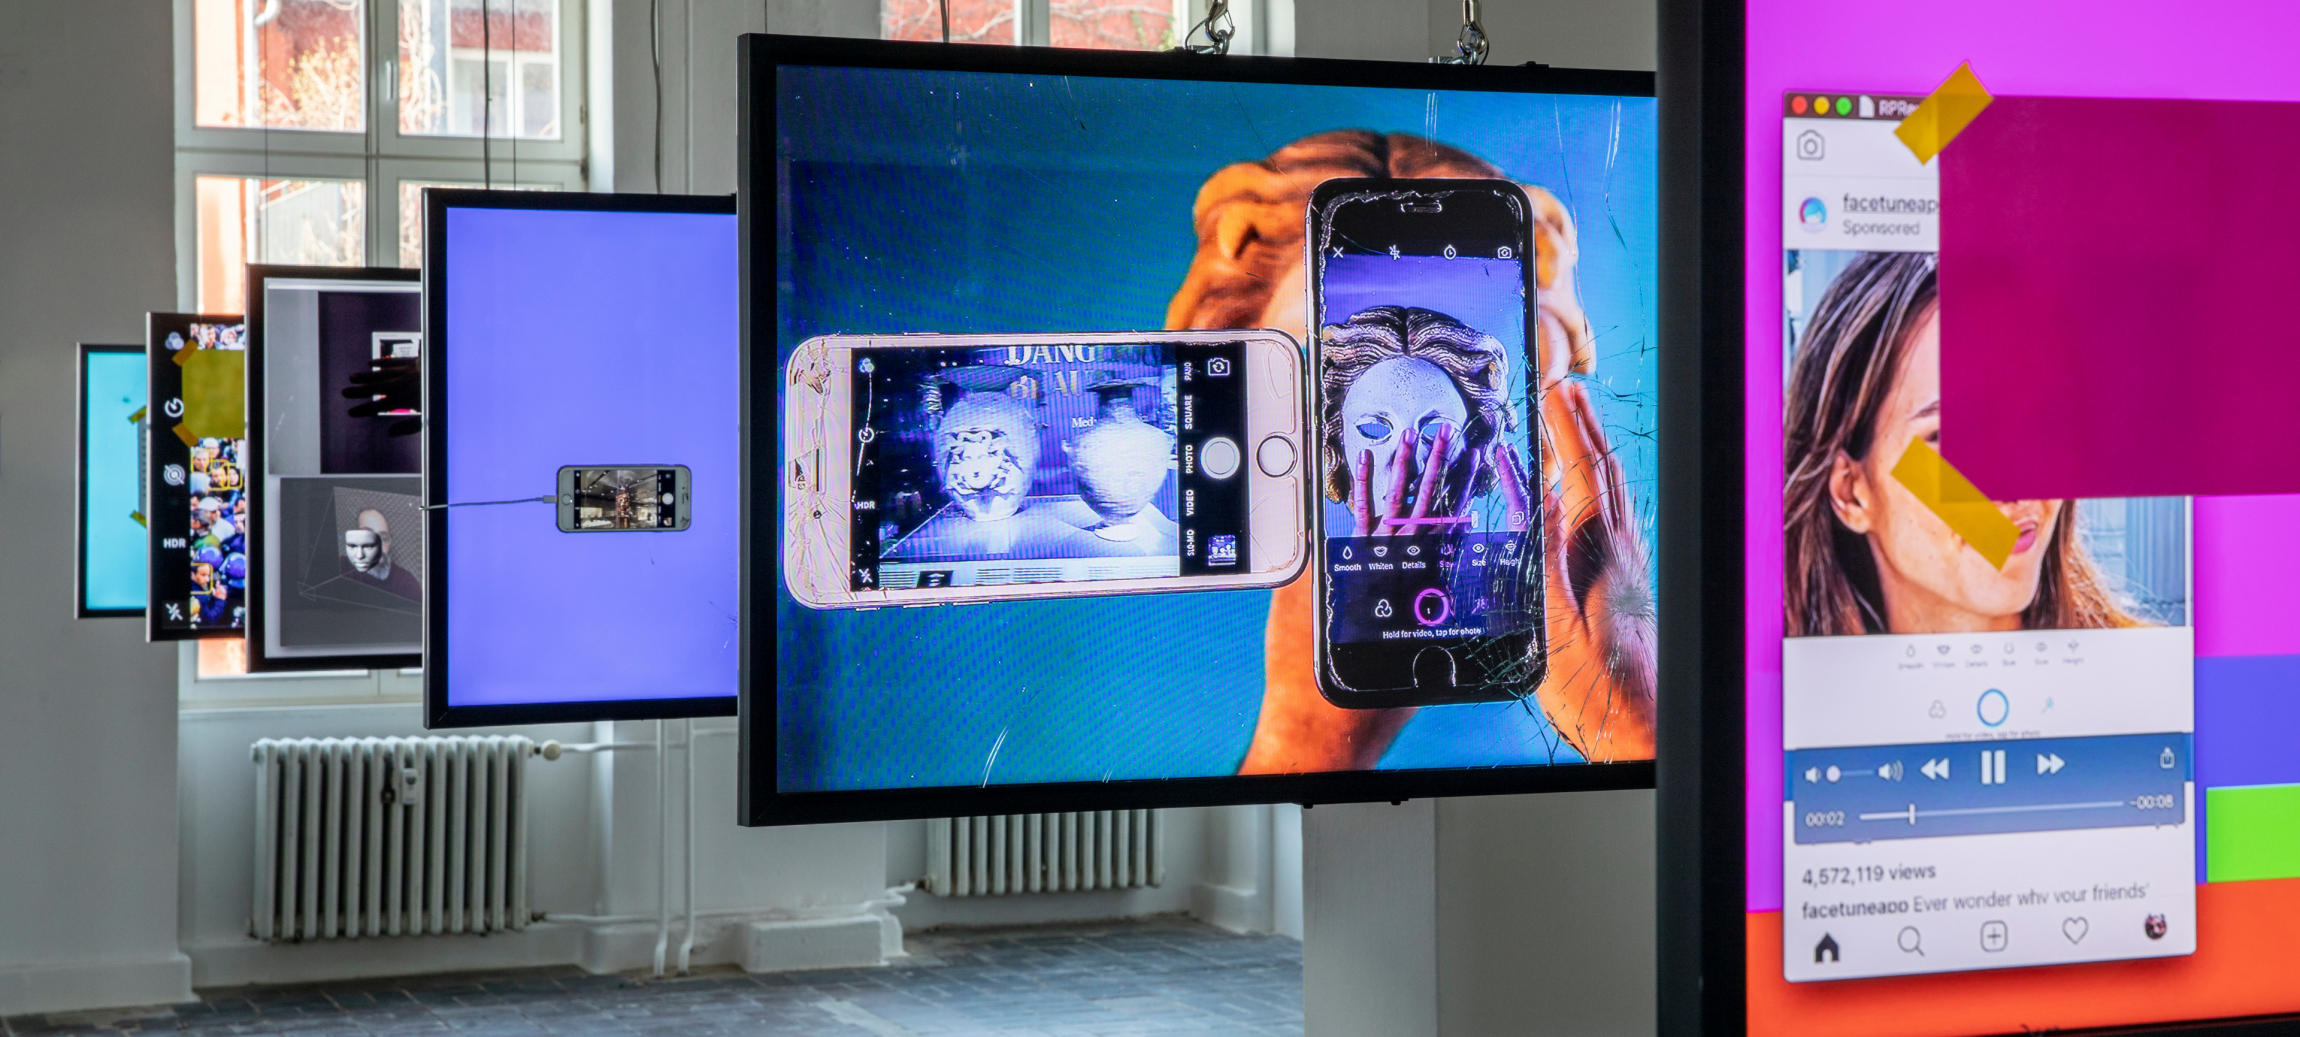 ICA at MECA&D Presents Monitor: Surveillance, Data, and the New Panoptic image